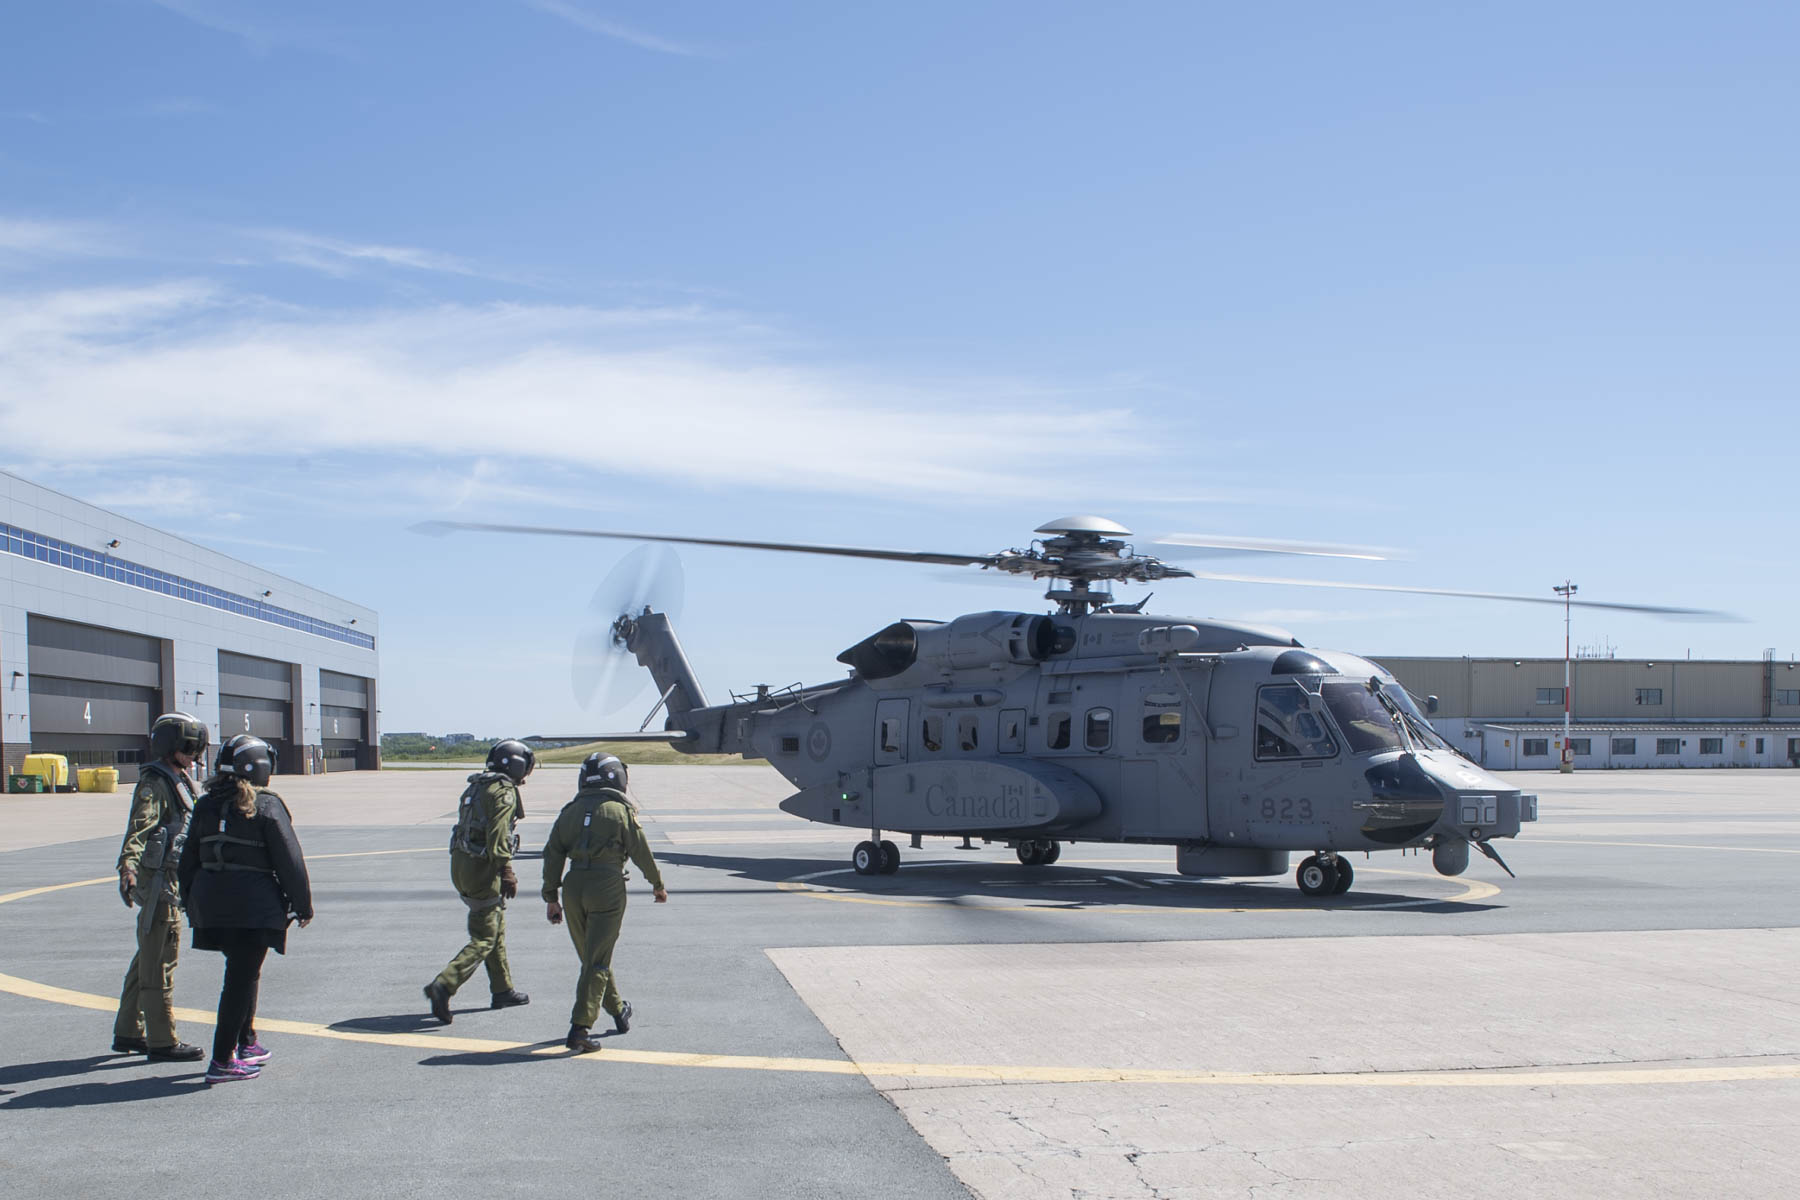 The CH-148 Cyclone is the most advanced maritime helicopter the Royal Canadian Air Force has ever employed.